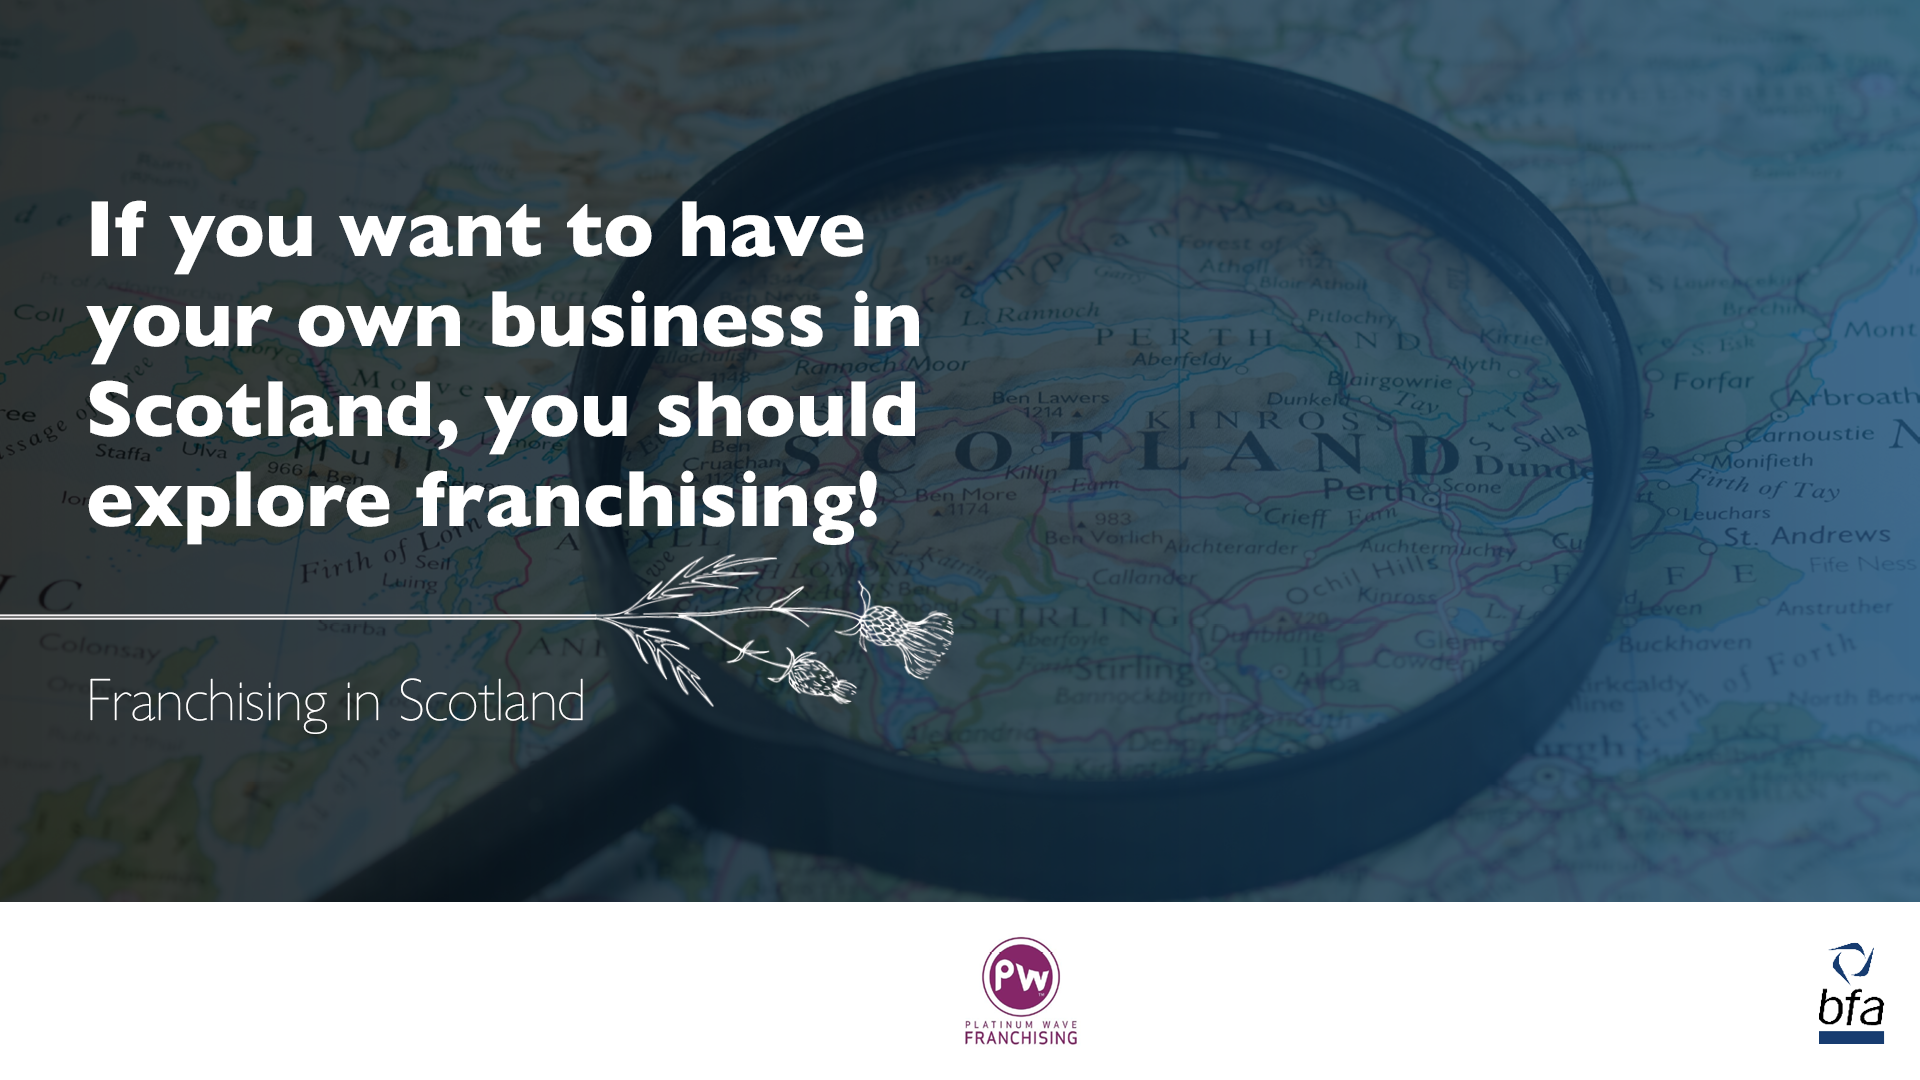 If you want to have your own business in Scotland, you should explore franchising!